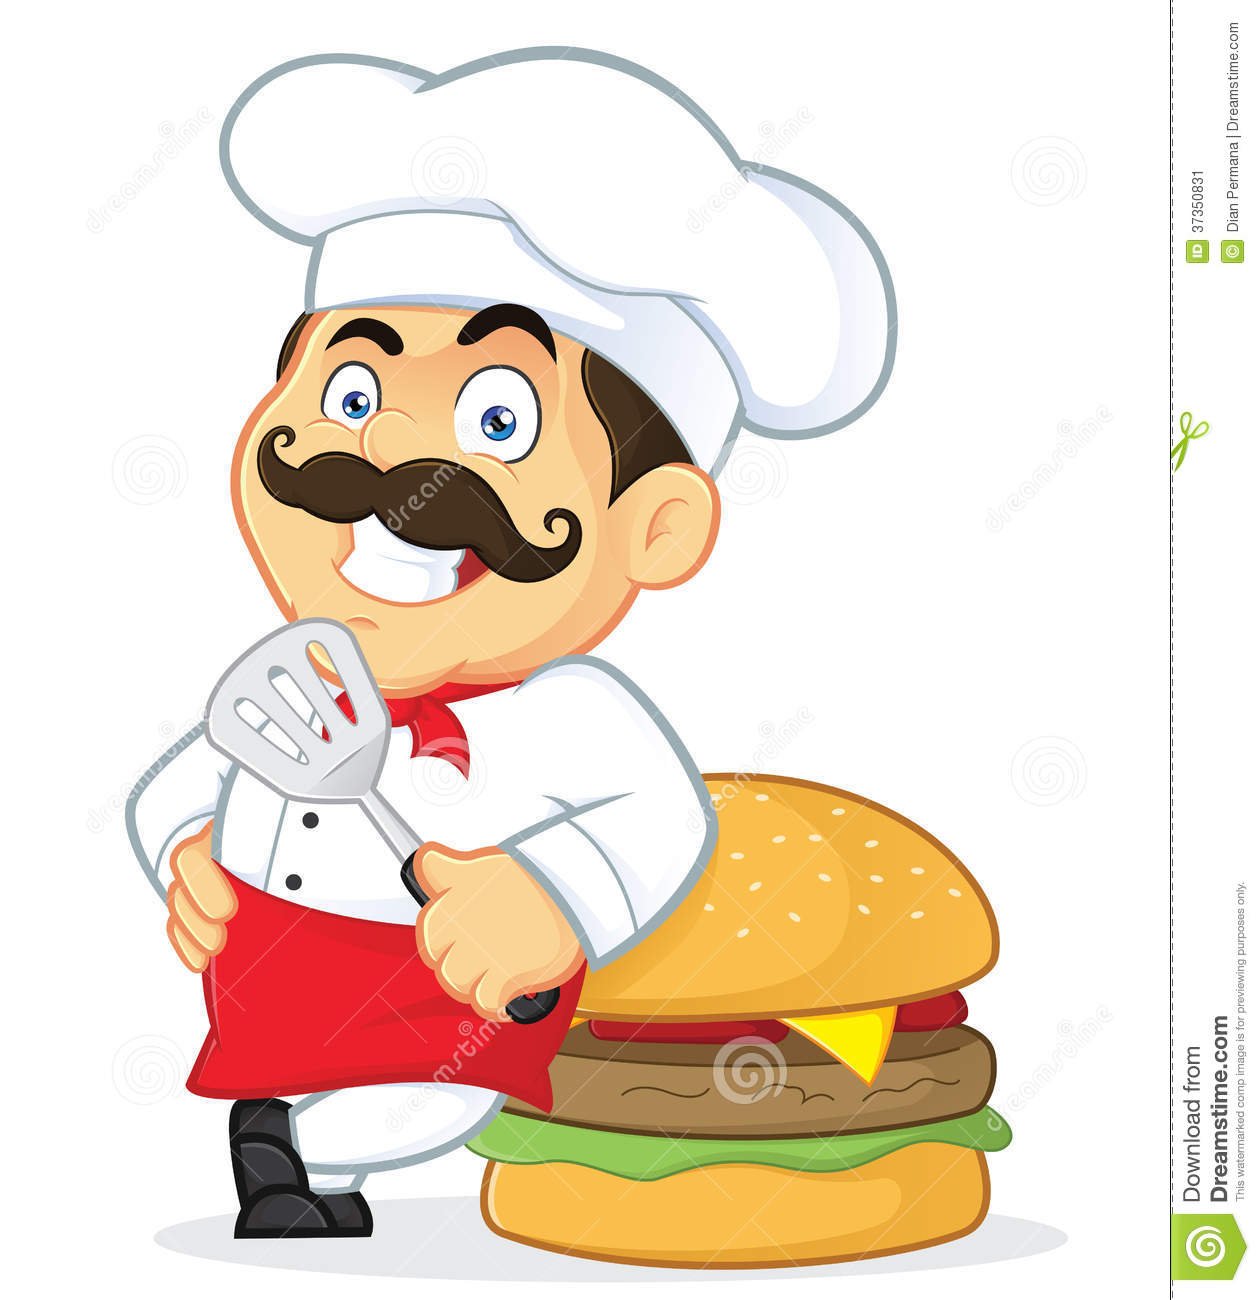 Chef With Giant Burger Stock Image-Chef with Giant Burger Stock Image-8